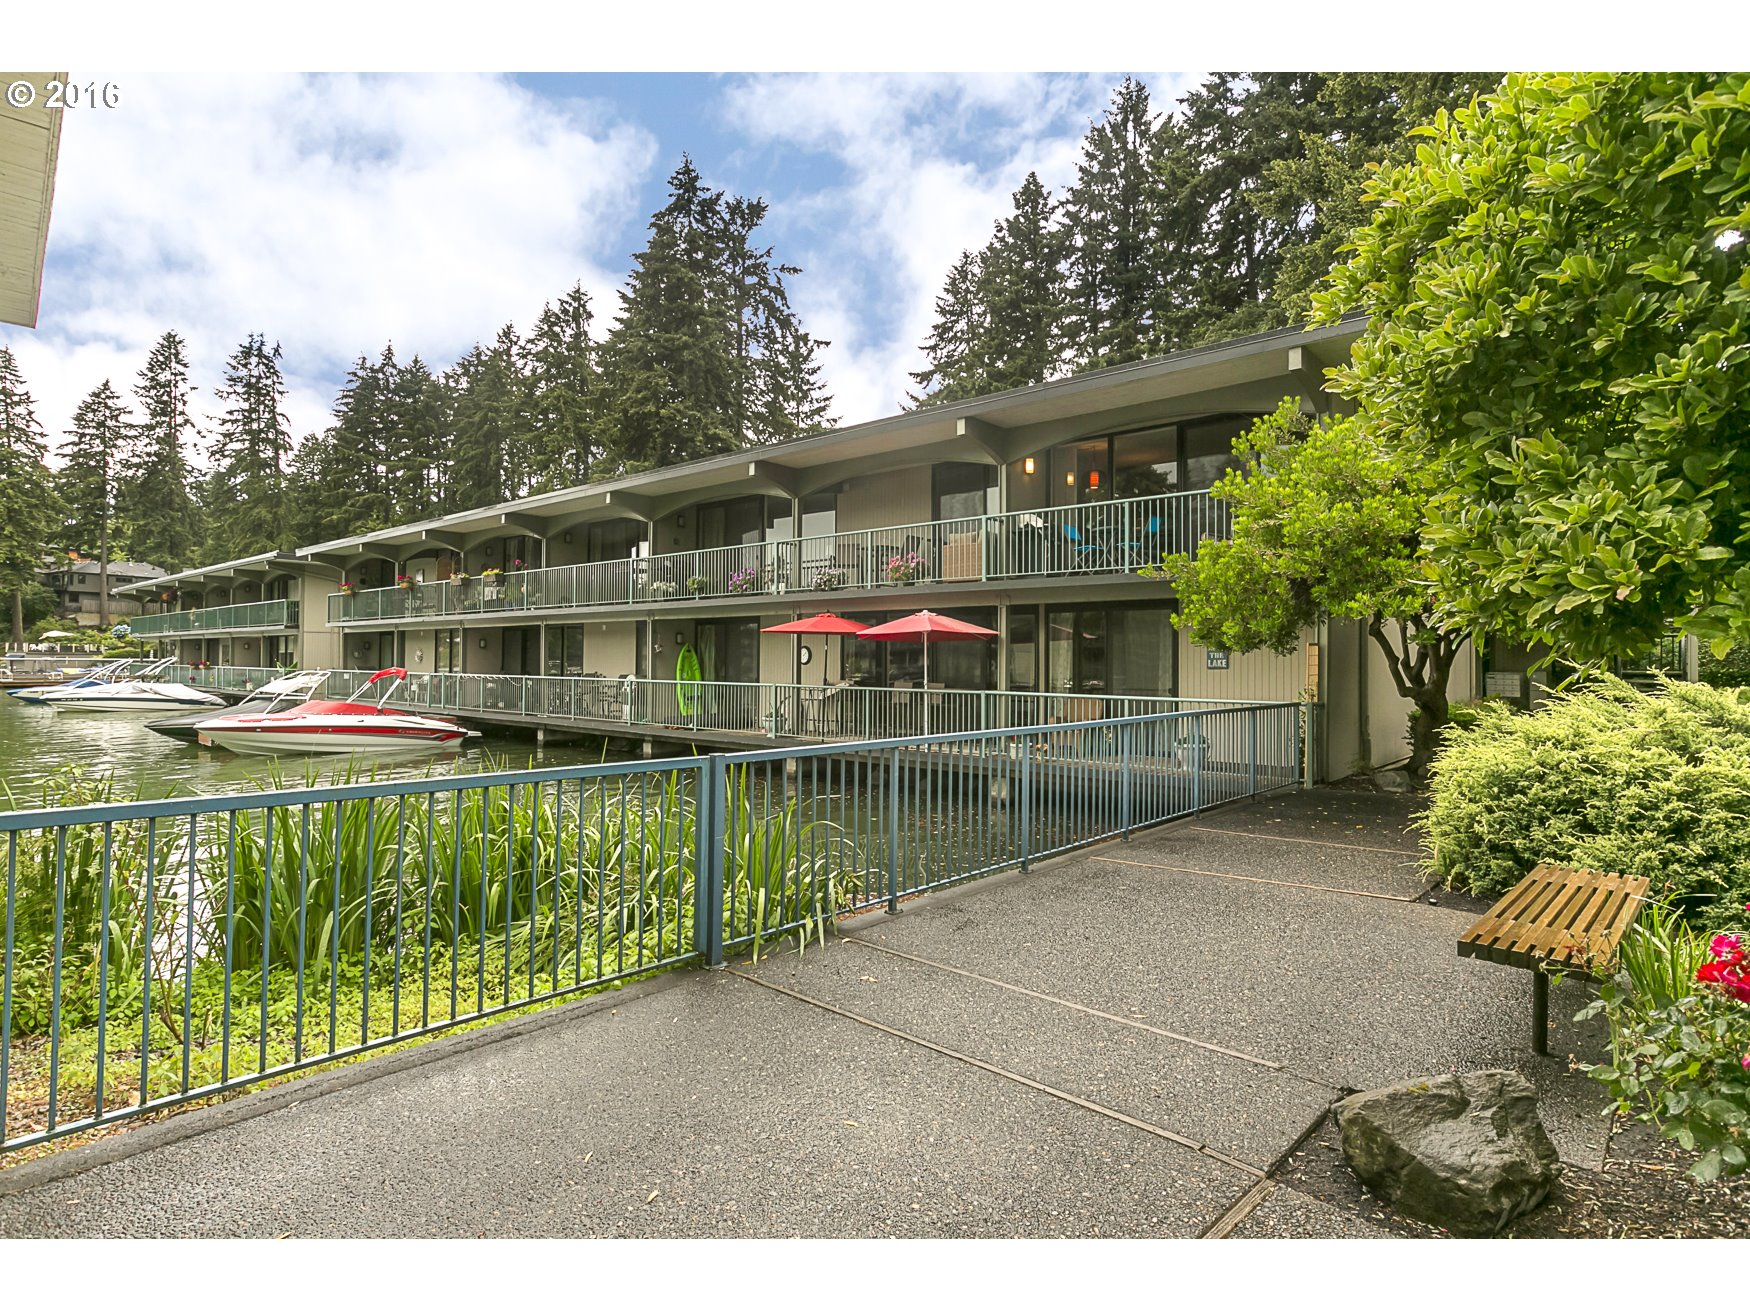 668 MCVEY AVE 77, Lake Oswego, OR 97034